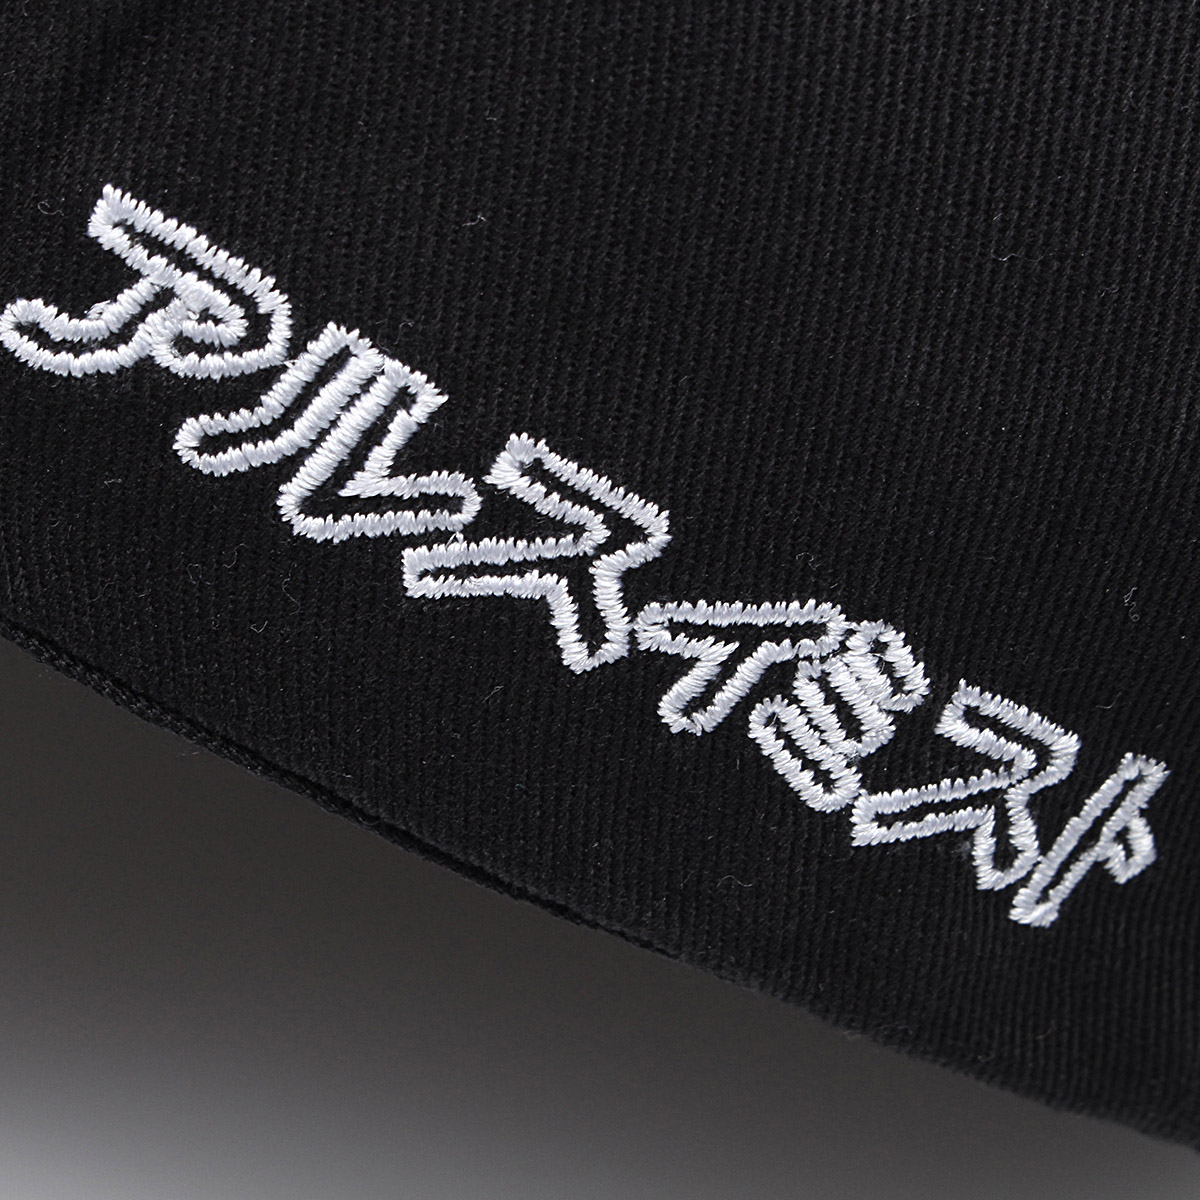 Unisex Snapback Ring Hip-Hop Hats Embroidery Baseball Cap